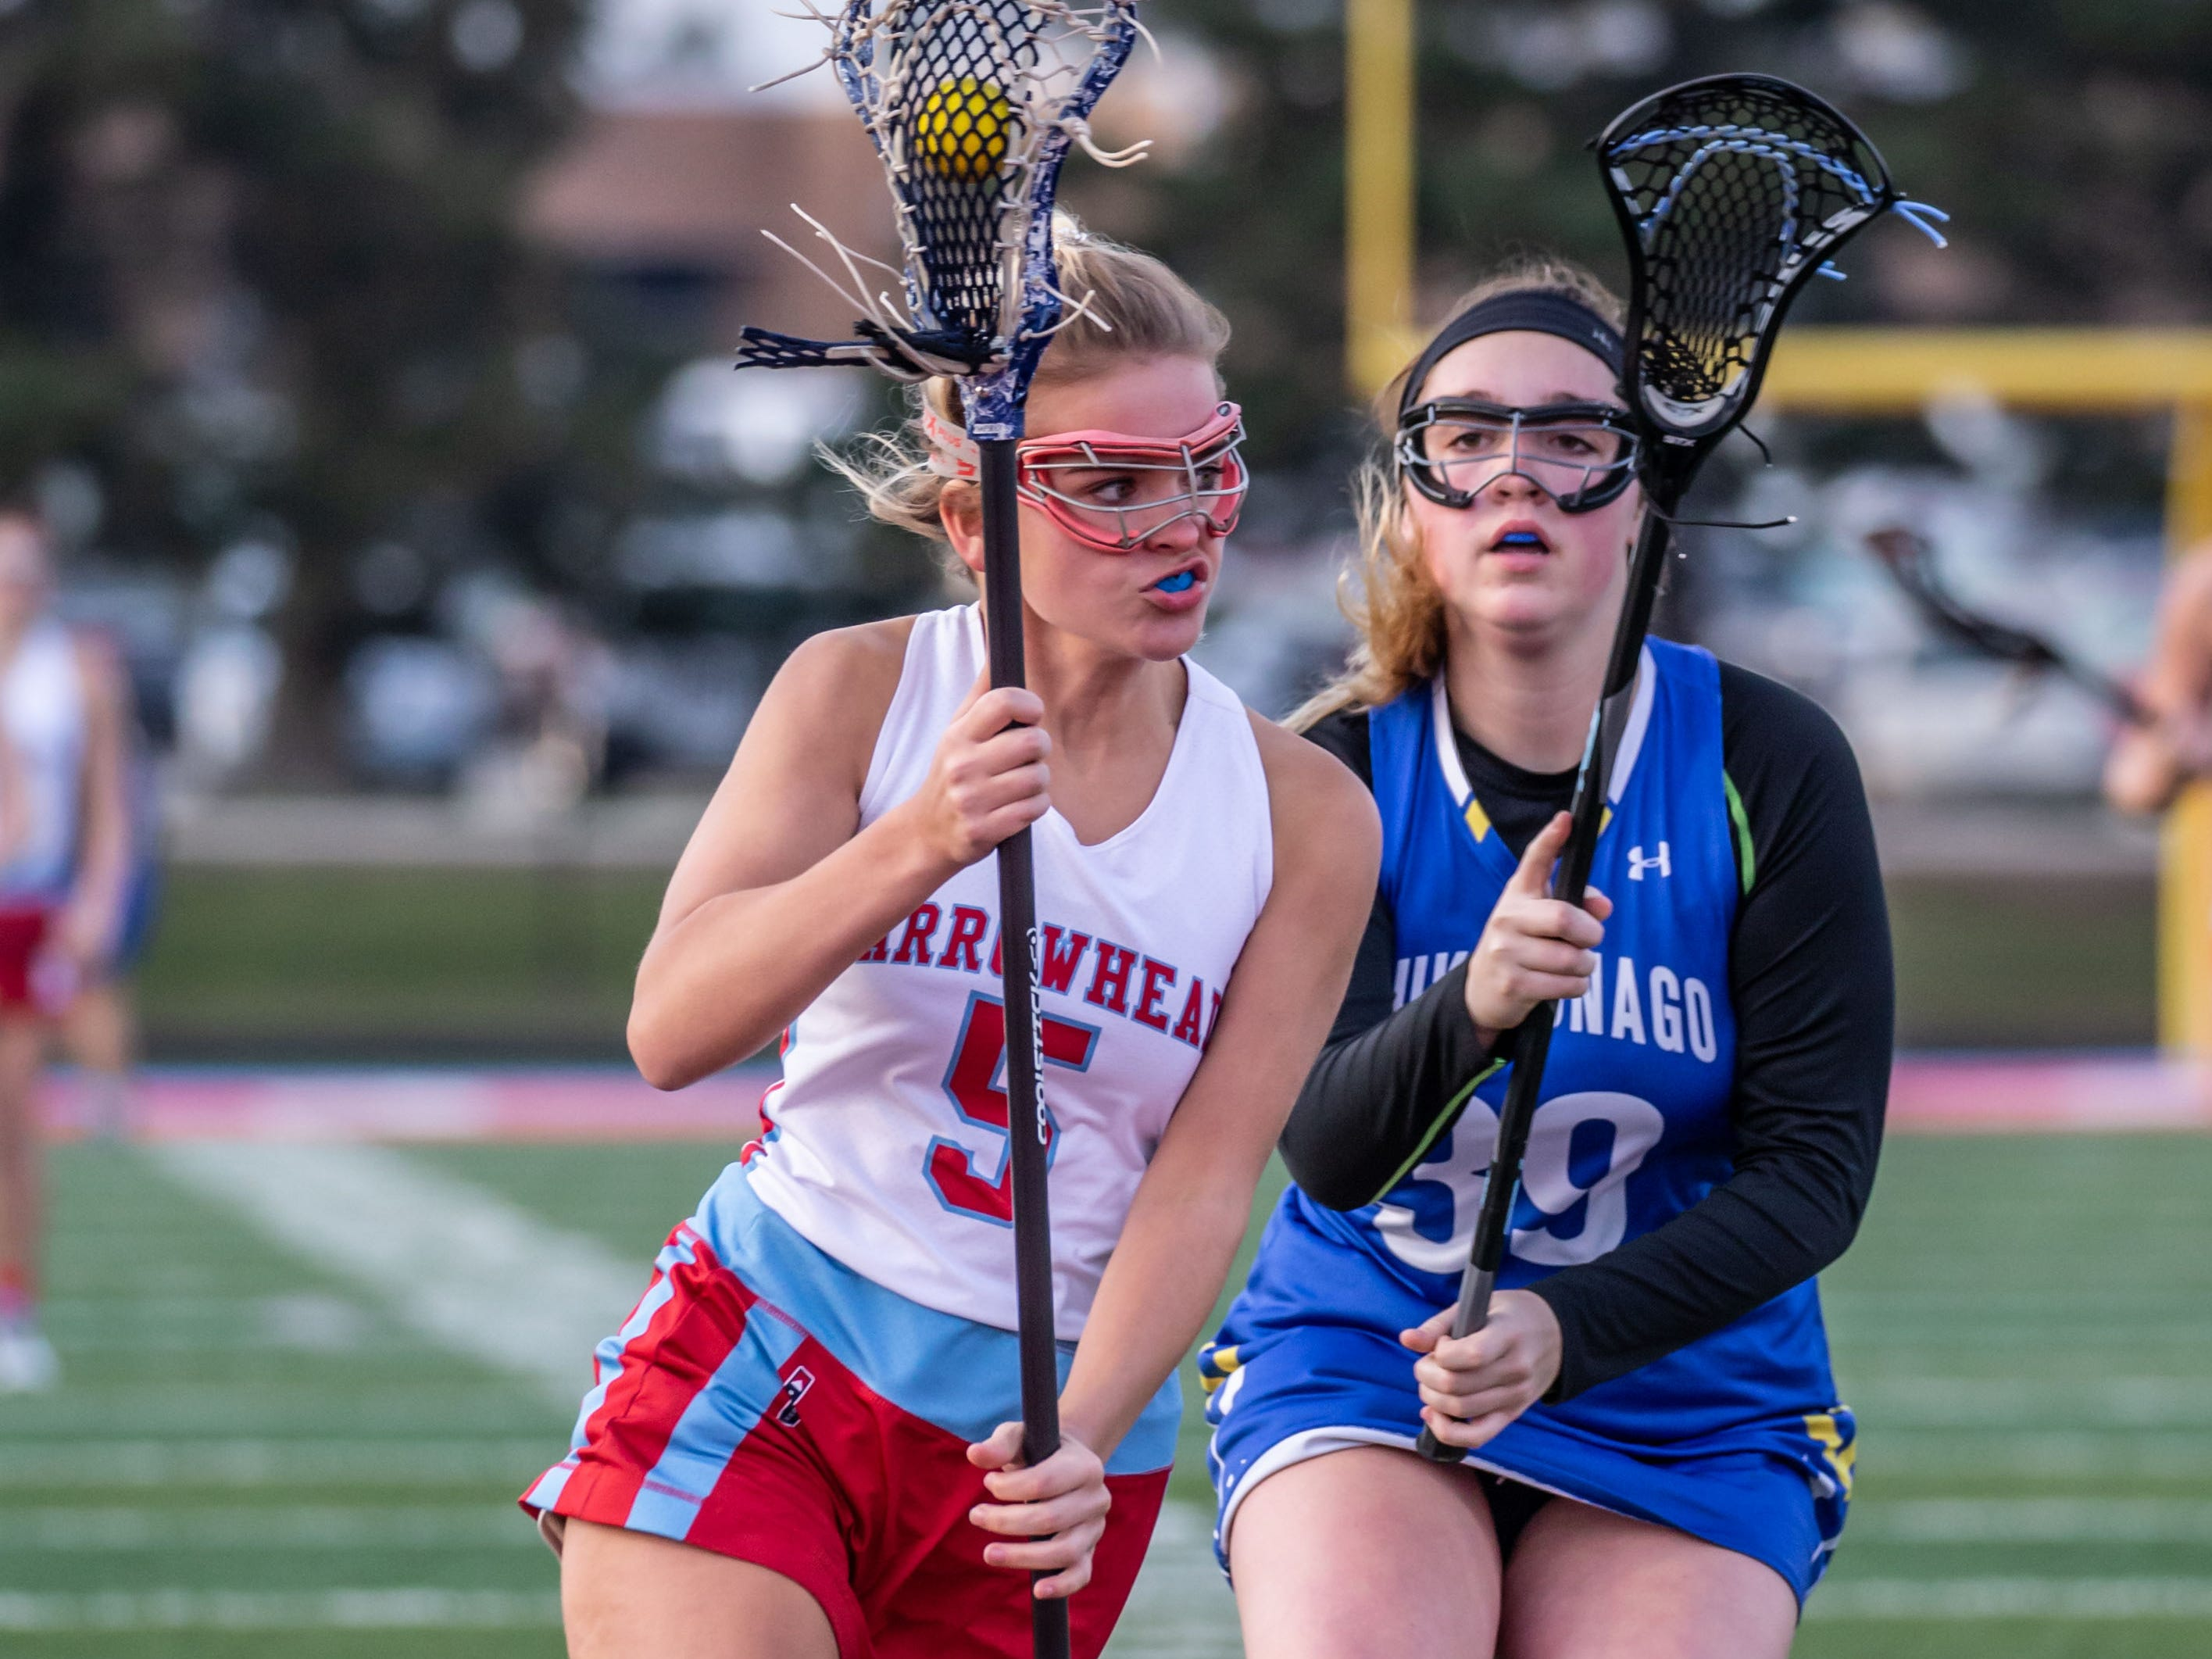 Arrowhead's Hunter Phillips (5) looks to get past Mukwonago's Hannah Cayon (39) during the game at Arrowhead on Tuesday, April 16, 2019.